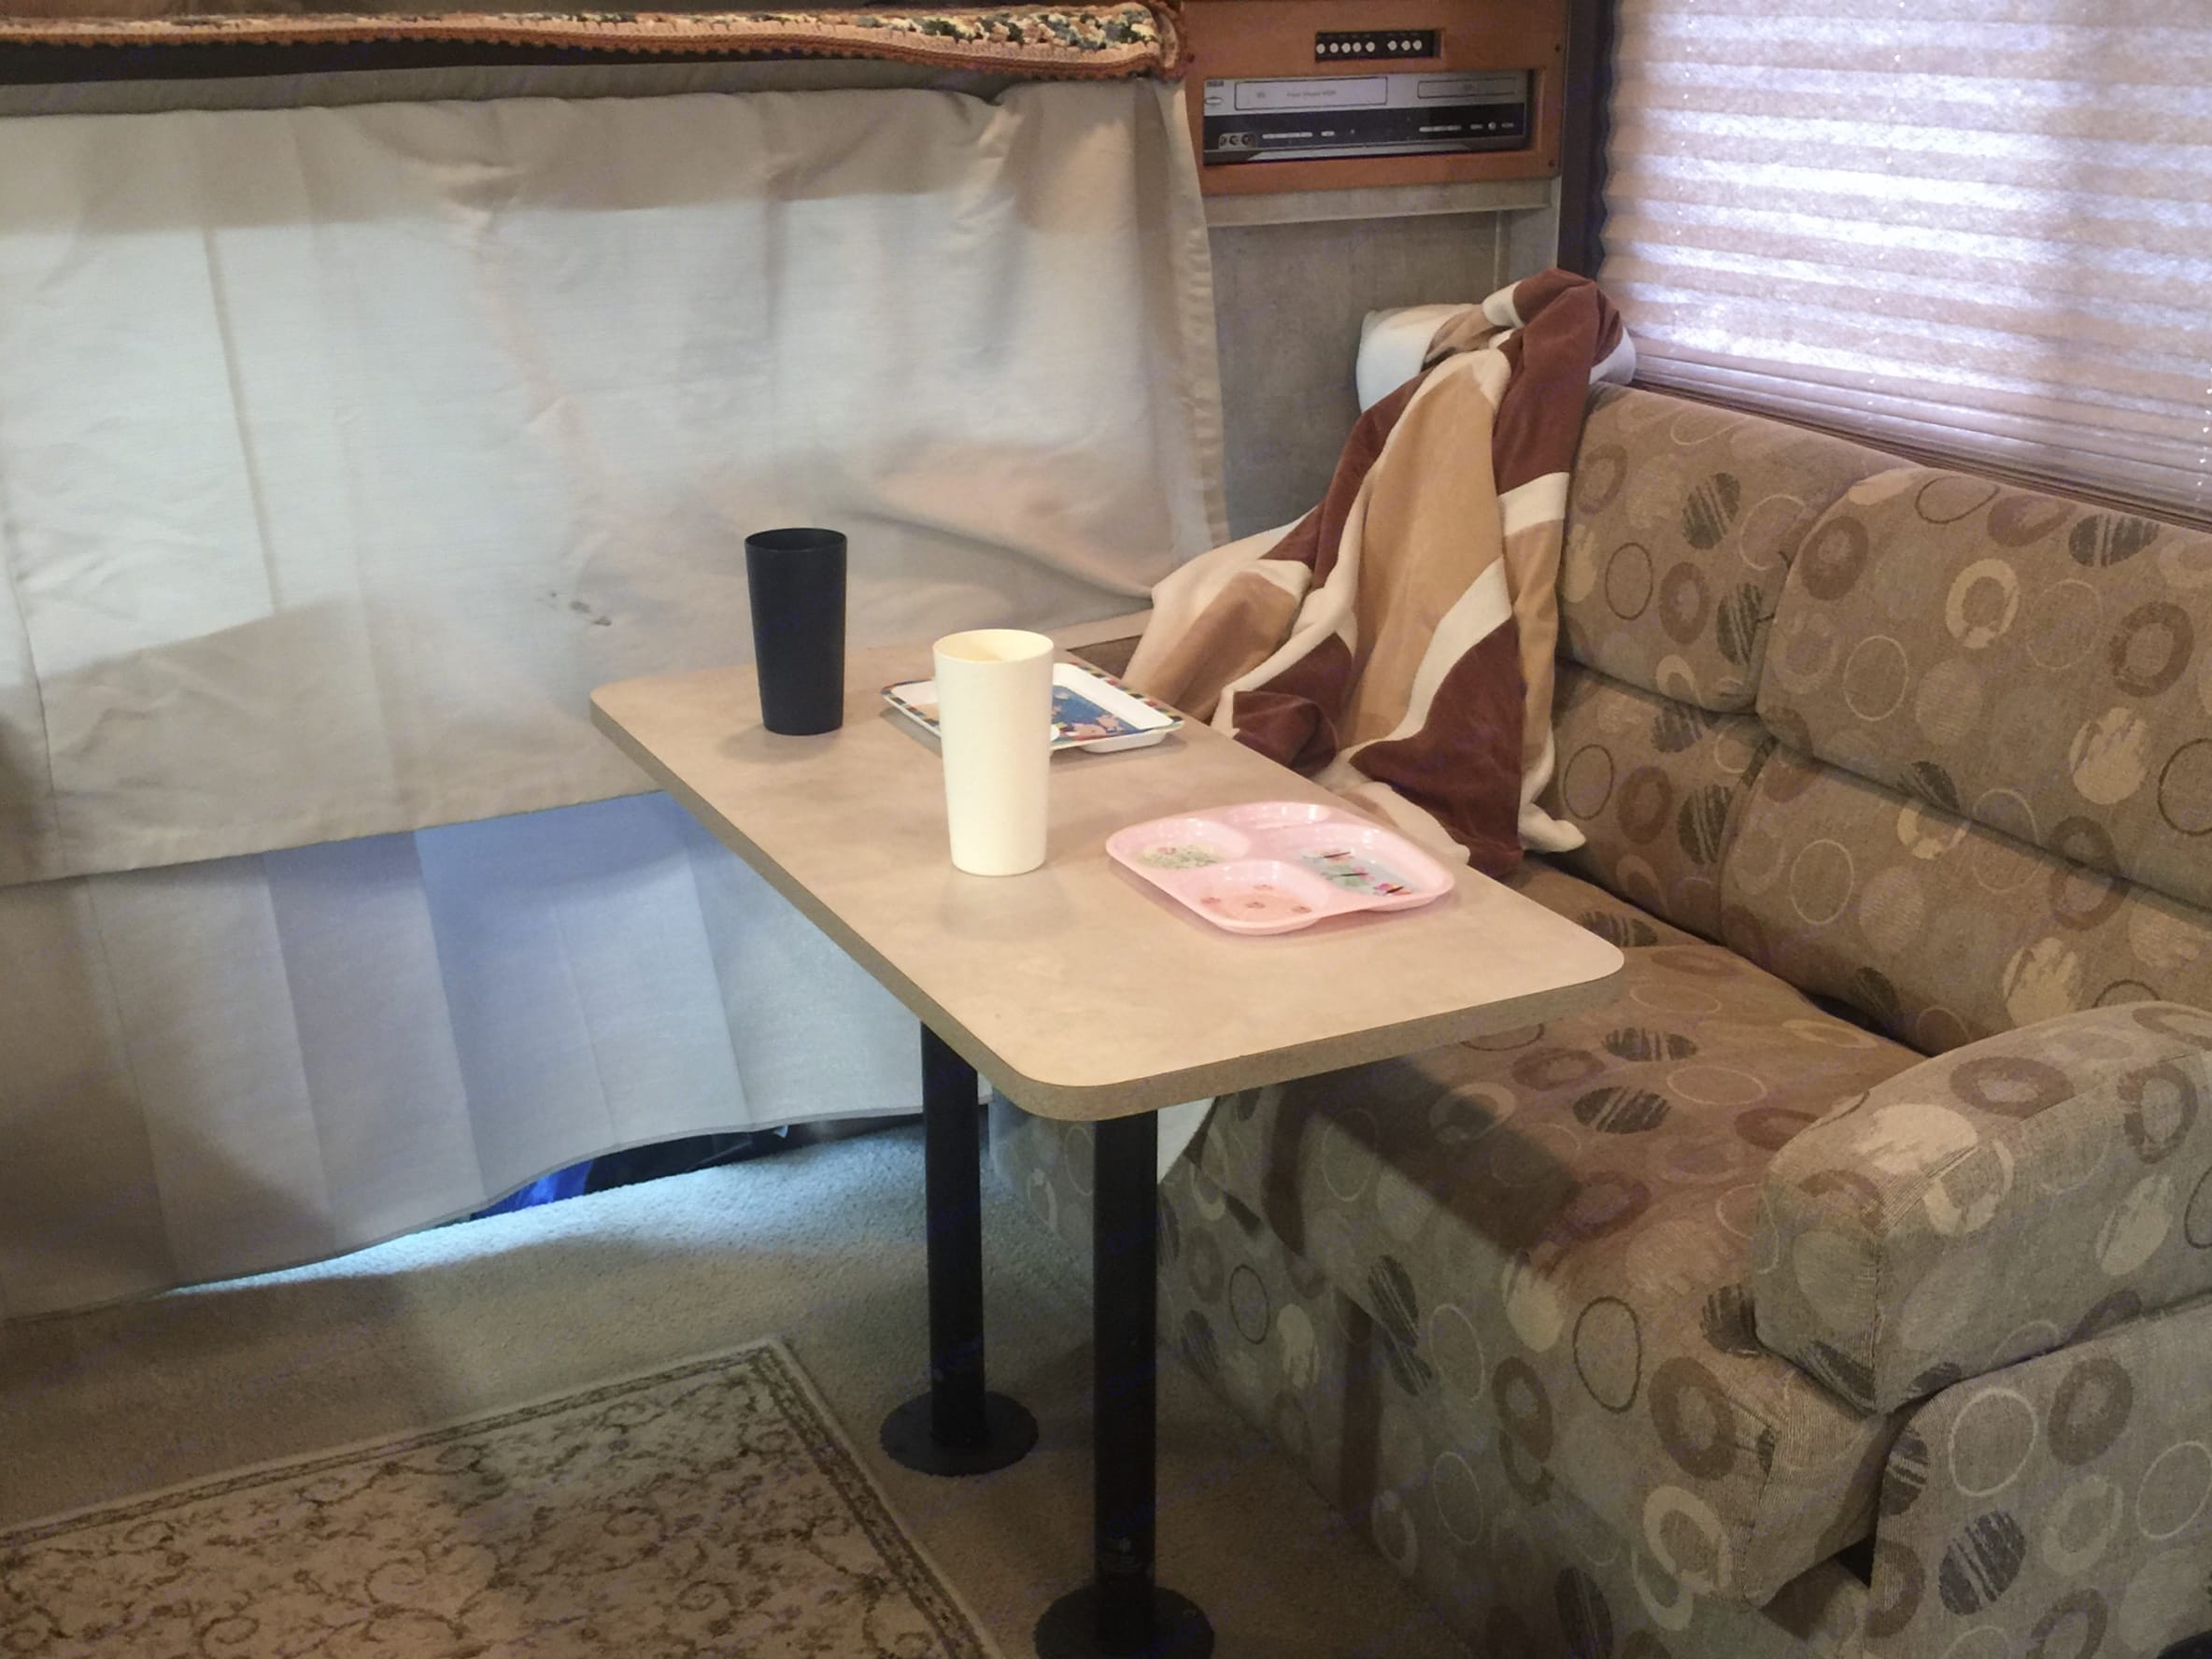 This can be set up in front of the sofa if needed for additional dining space. Fleetwood Tioga 2007